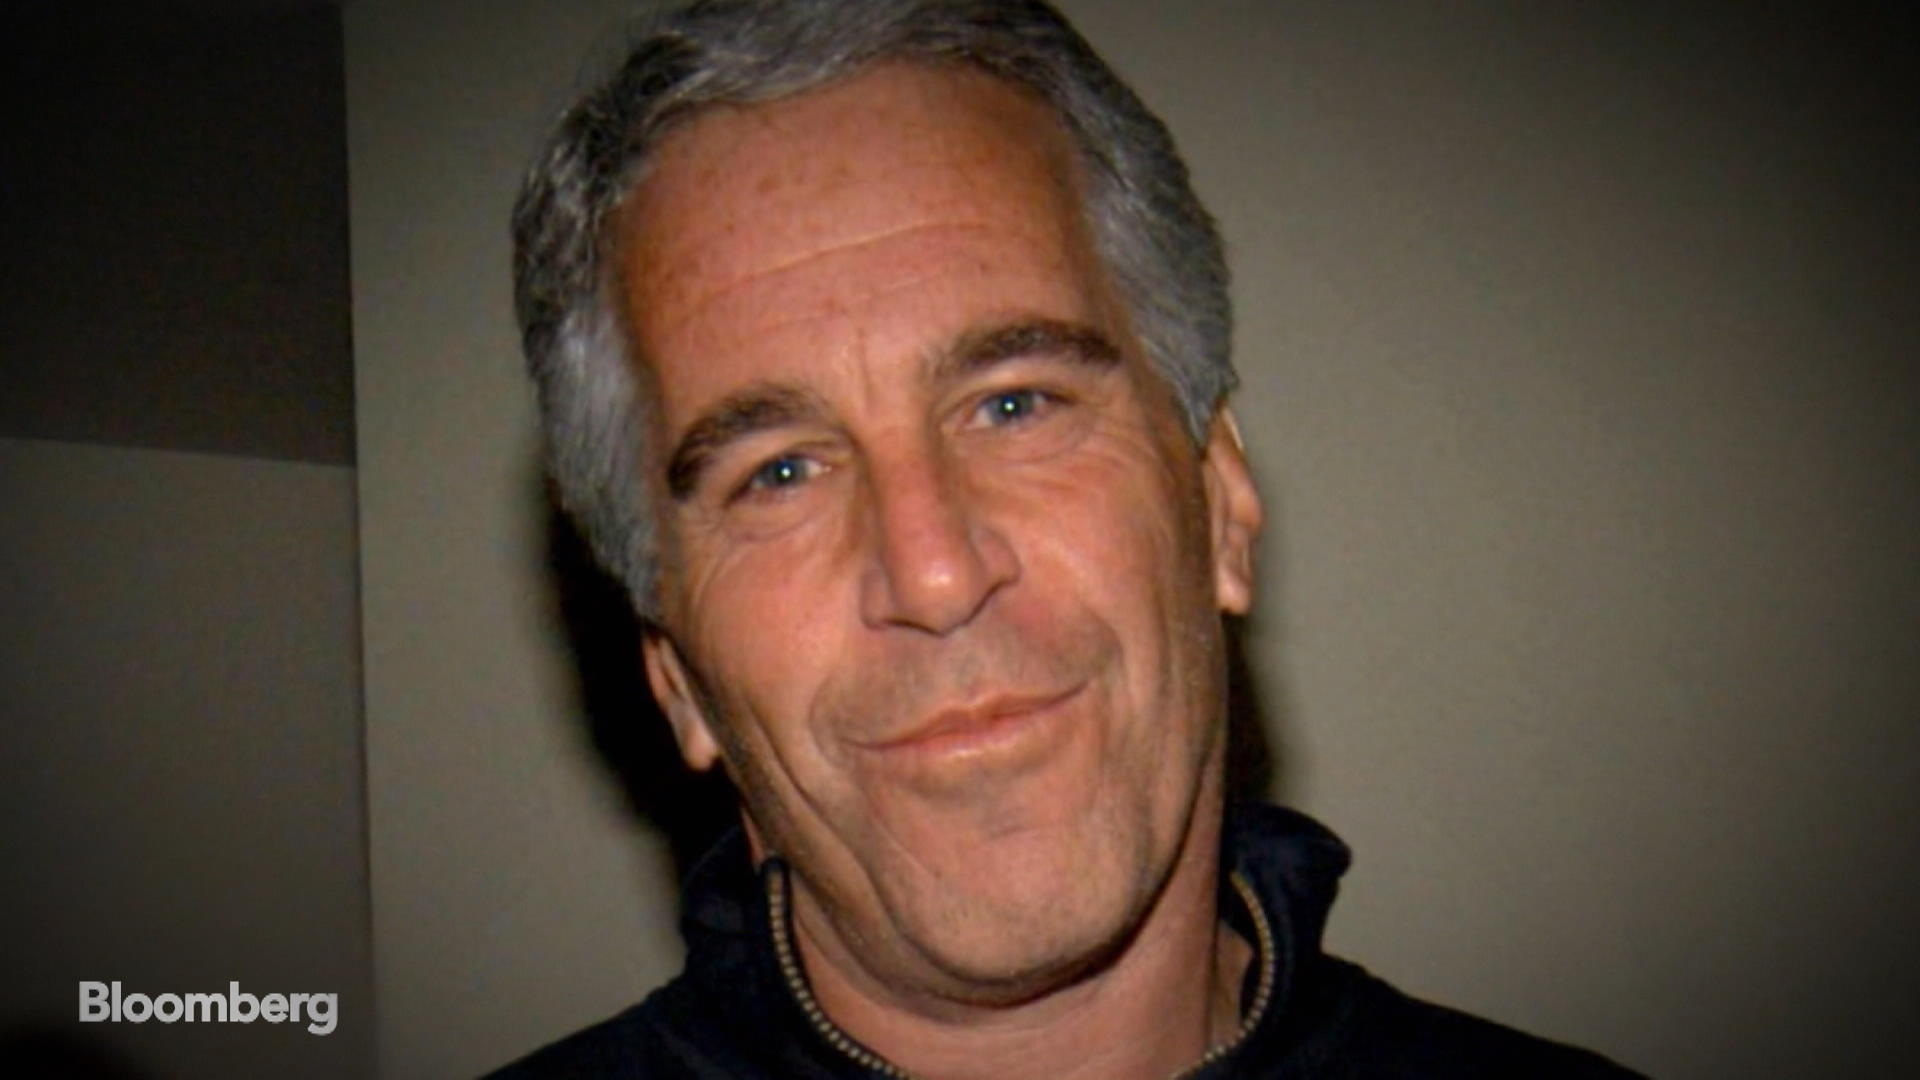 How Much Is Jeffrey Epstein Worth How Did He Make His Money